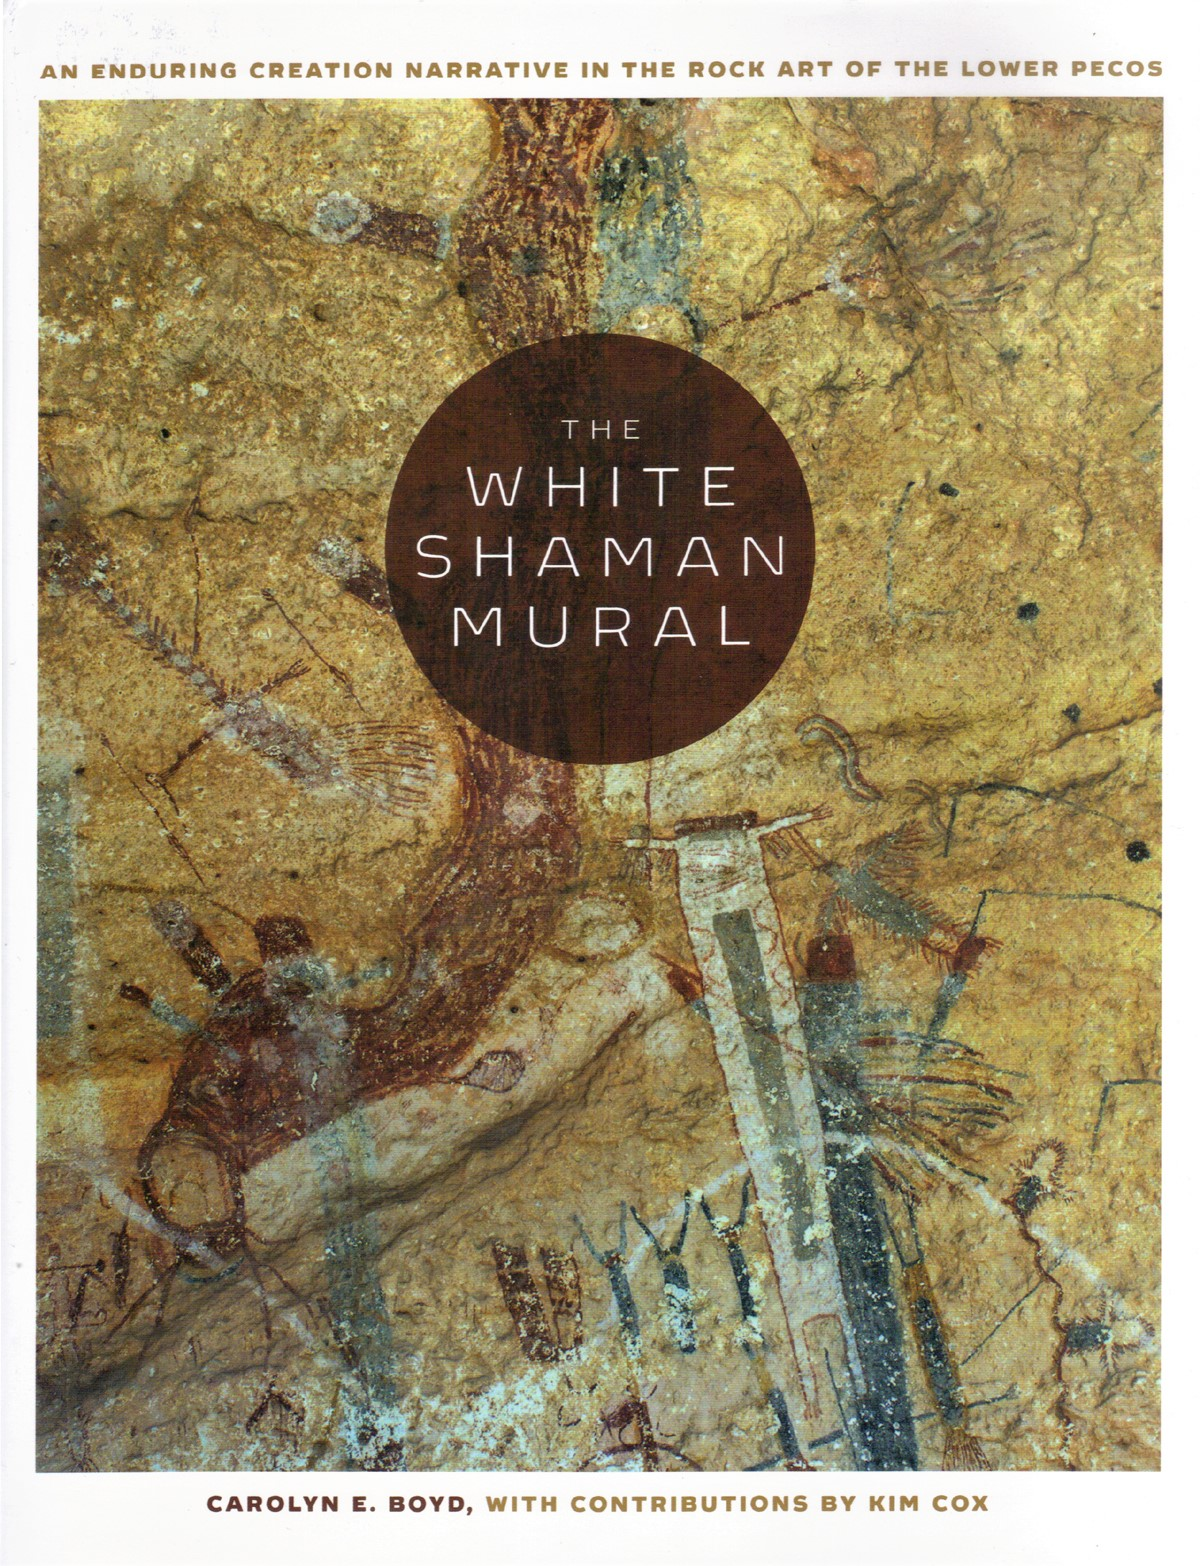 The White Shaman Mural by Carolyn Boyd. Rock art of the Lower Pecos